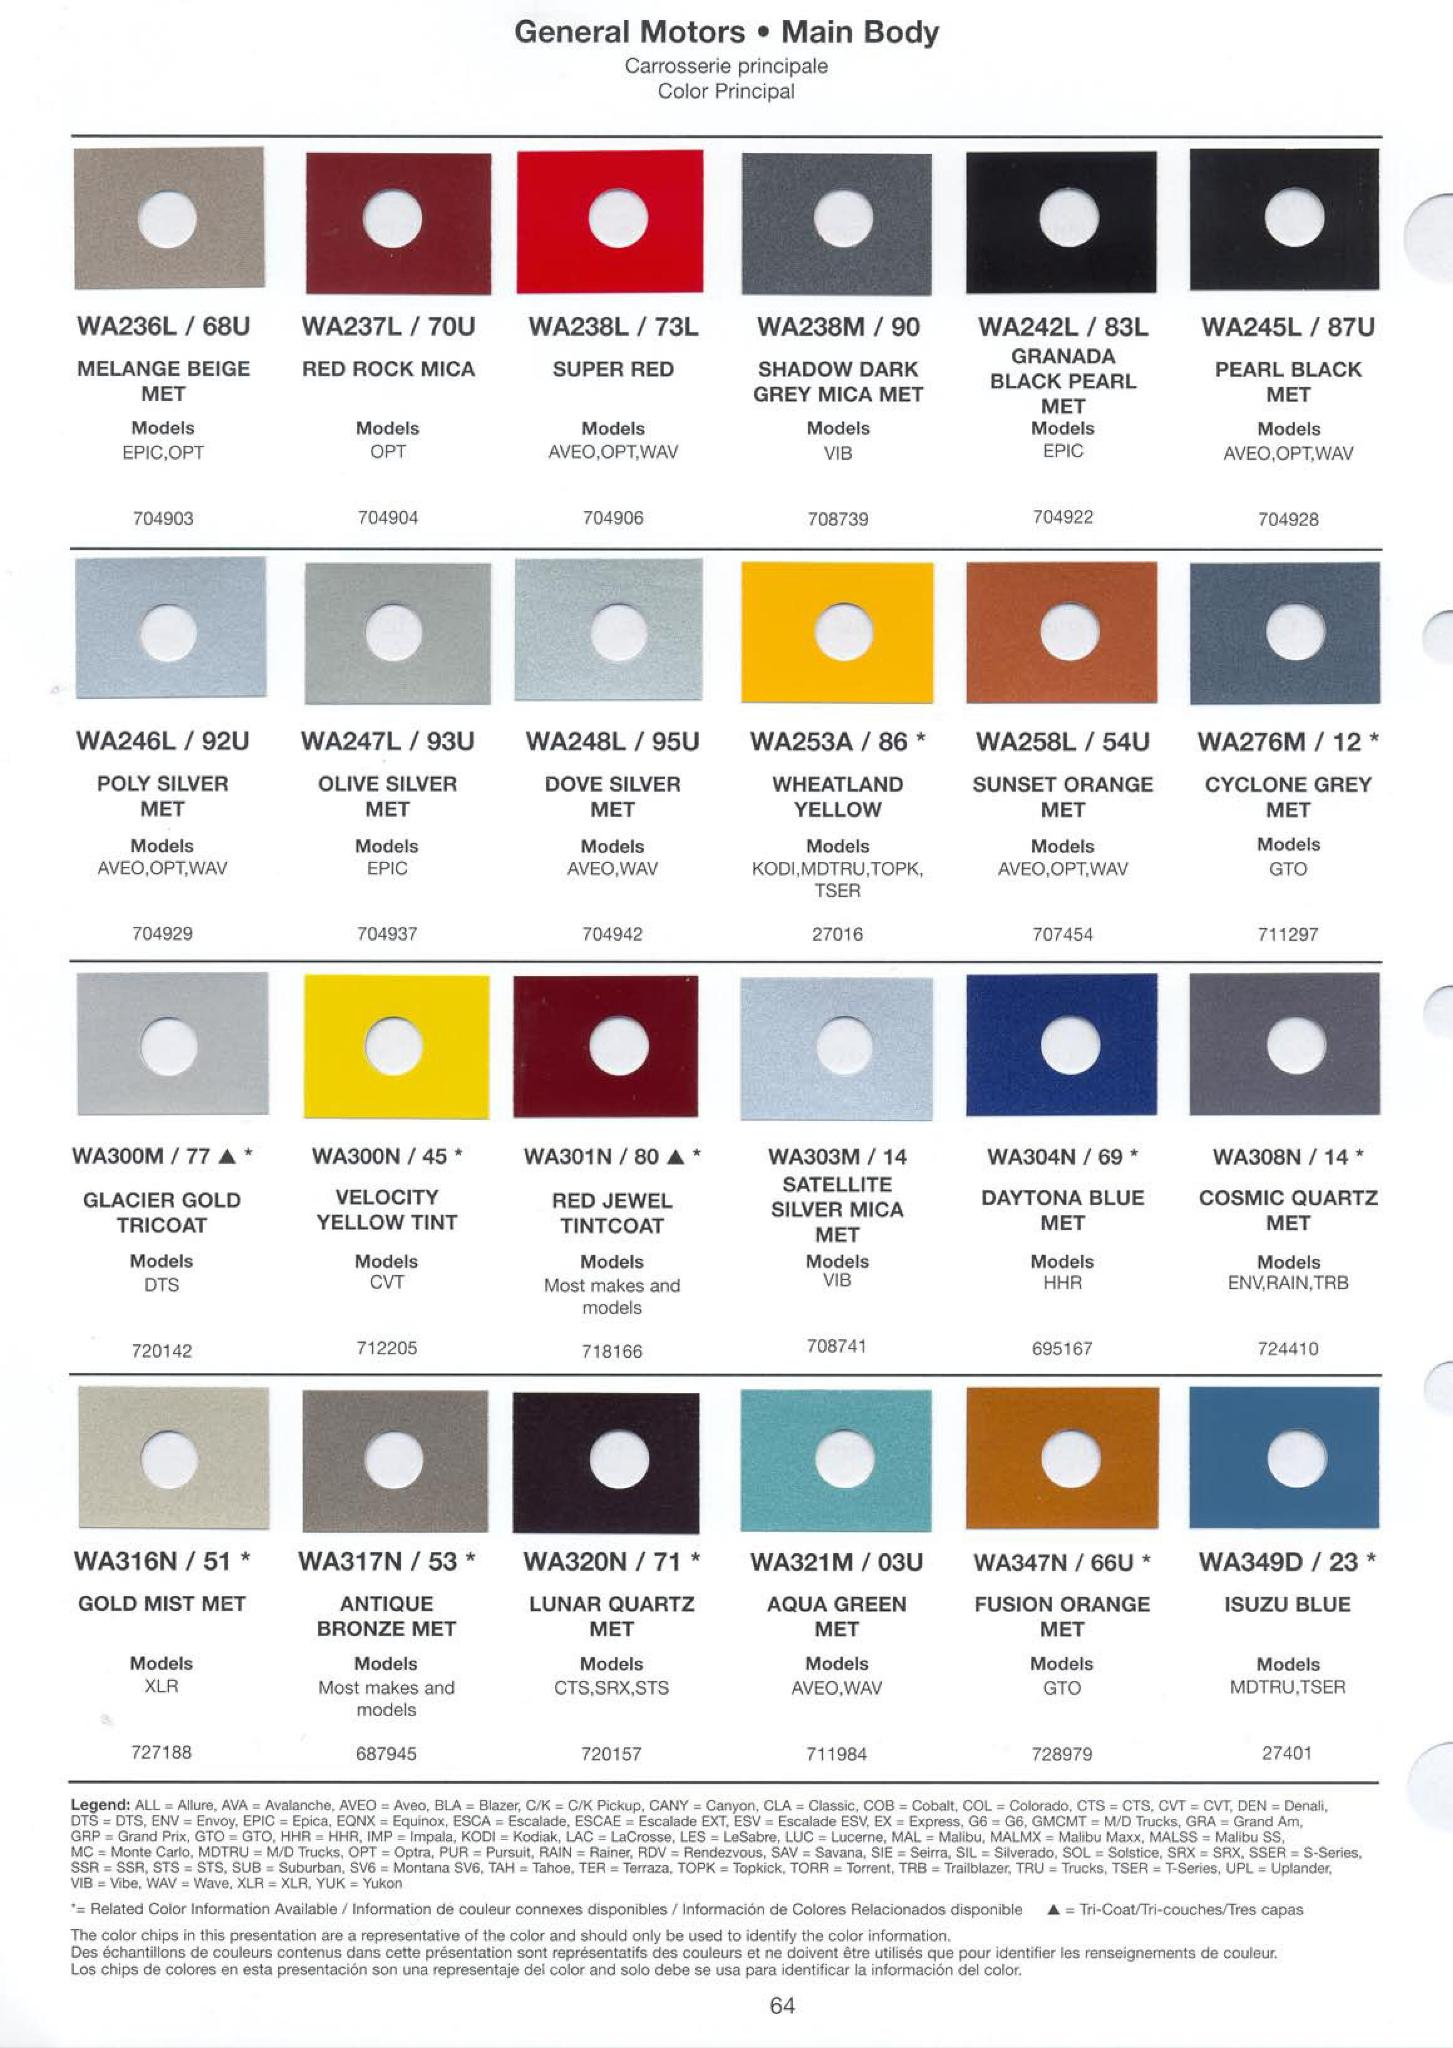 General Motors Paint (Color) Code Chart